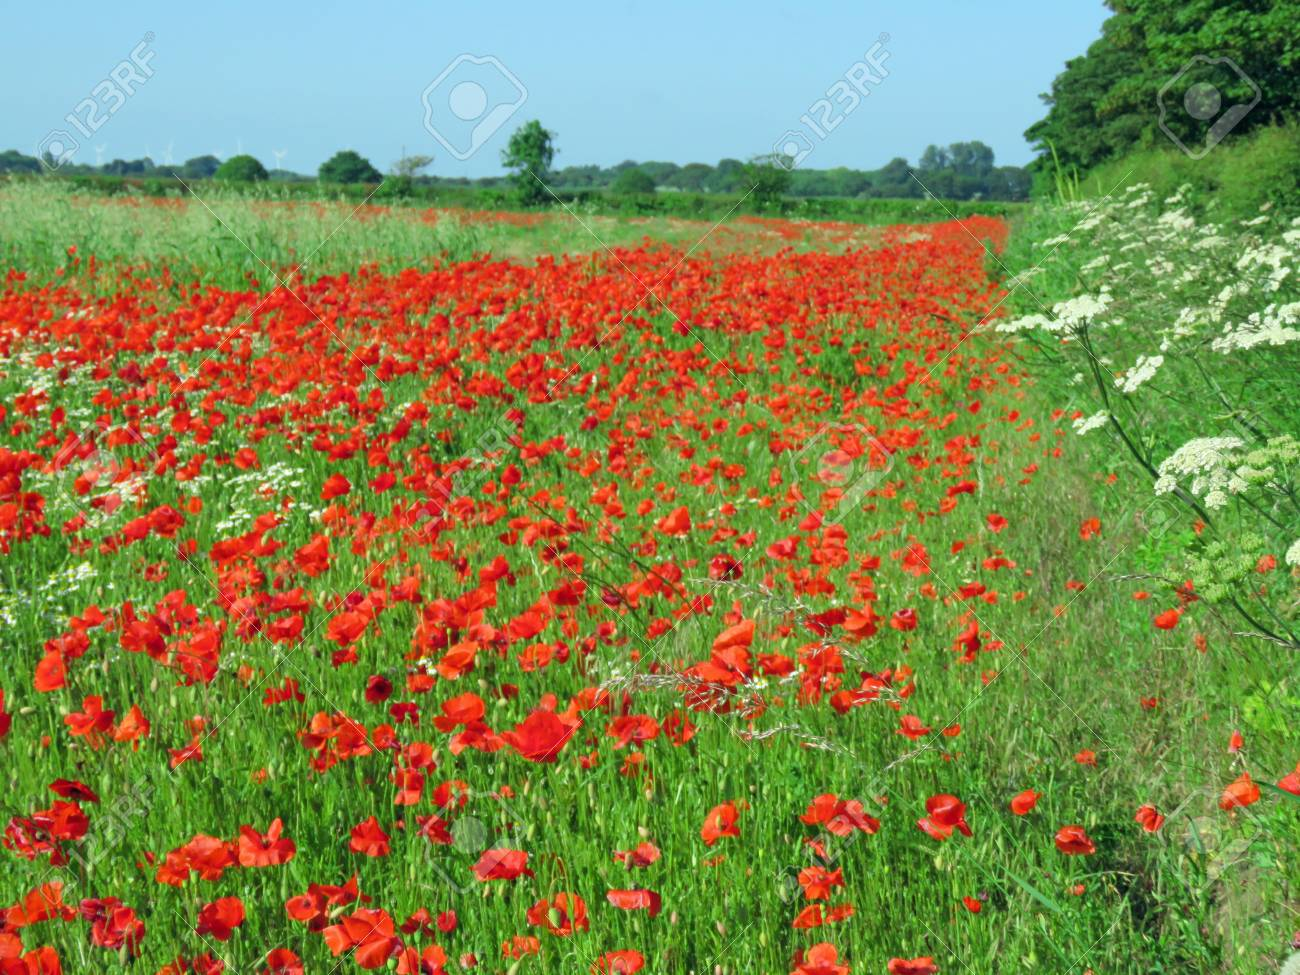 A meadow full of poppies and grasses in rural English countryside Standard-Bild - 81835532